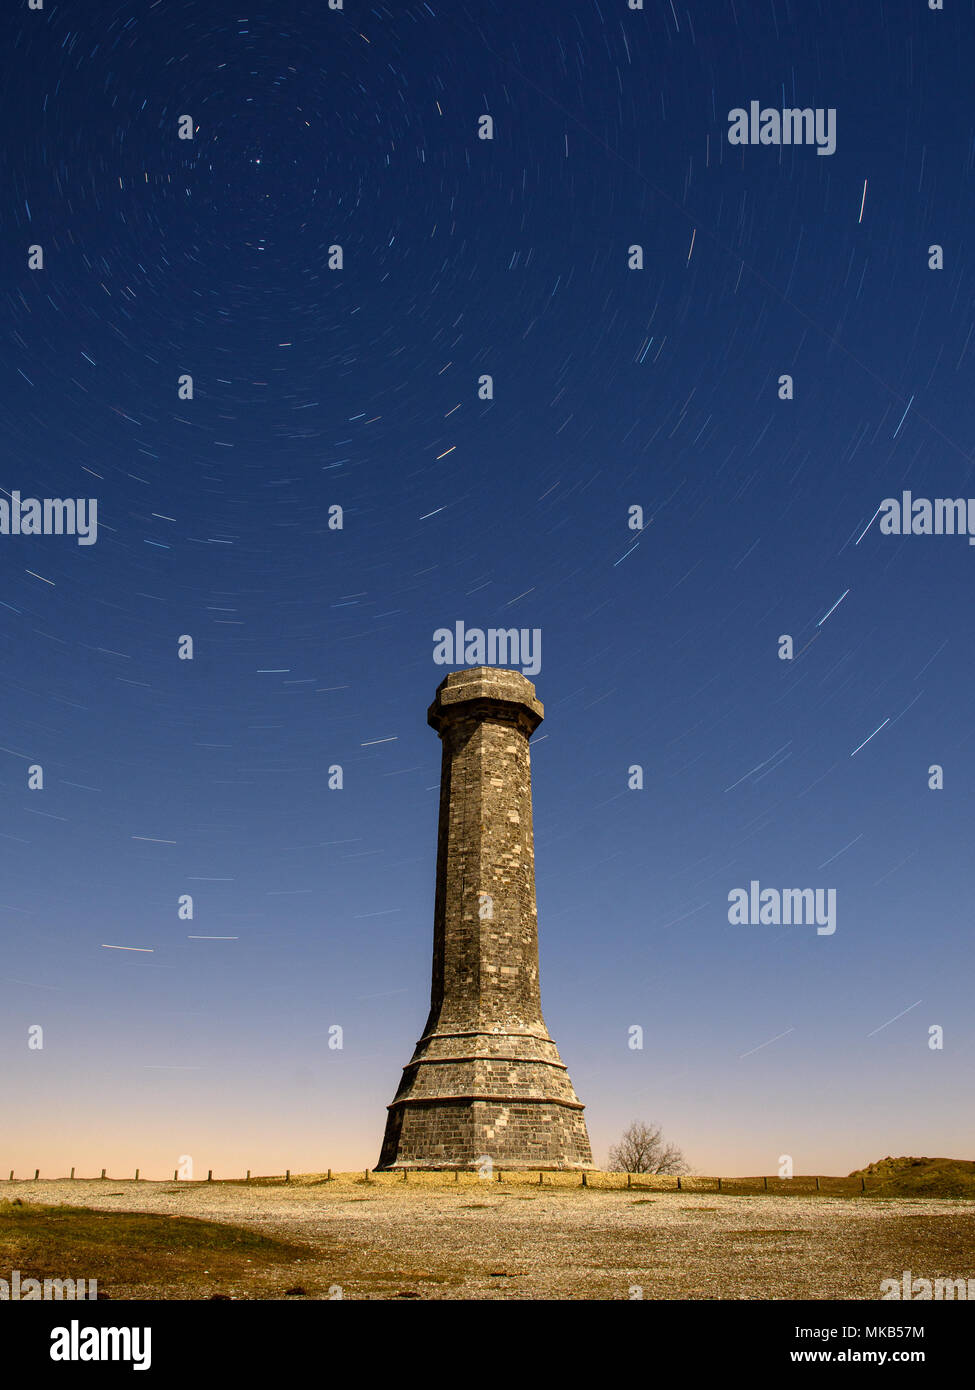 Stars leave trails in the night sky in a long exposure photograph of a moonlit Hardy Monument in the Dorset Downs. - Stock Image